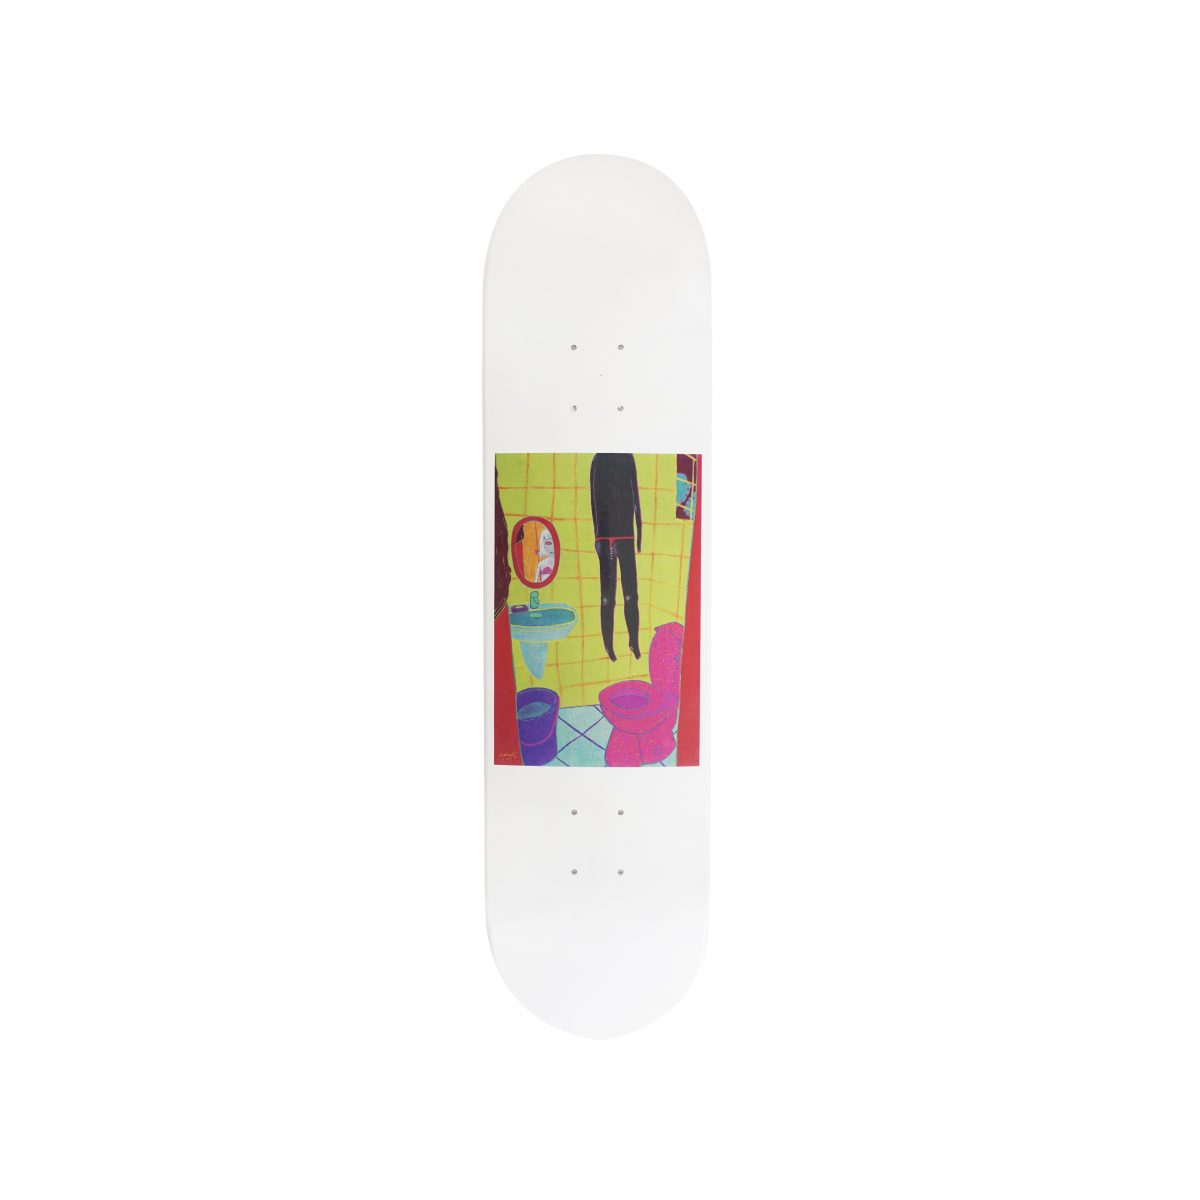 YEOKAA FOR PROGRESS® S/S 2018 SKATE DECK (WHITE)